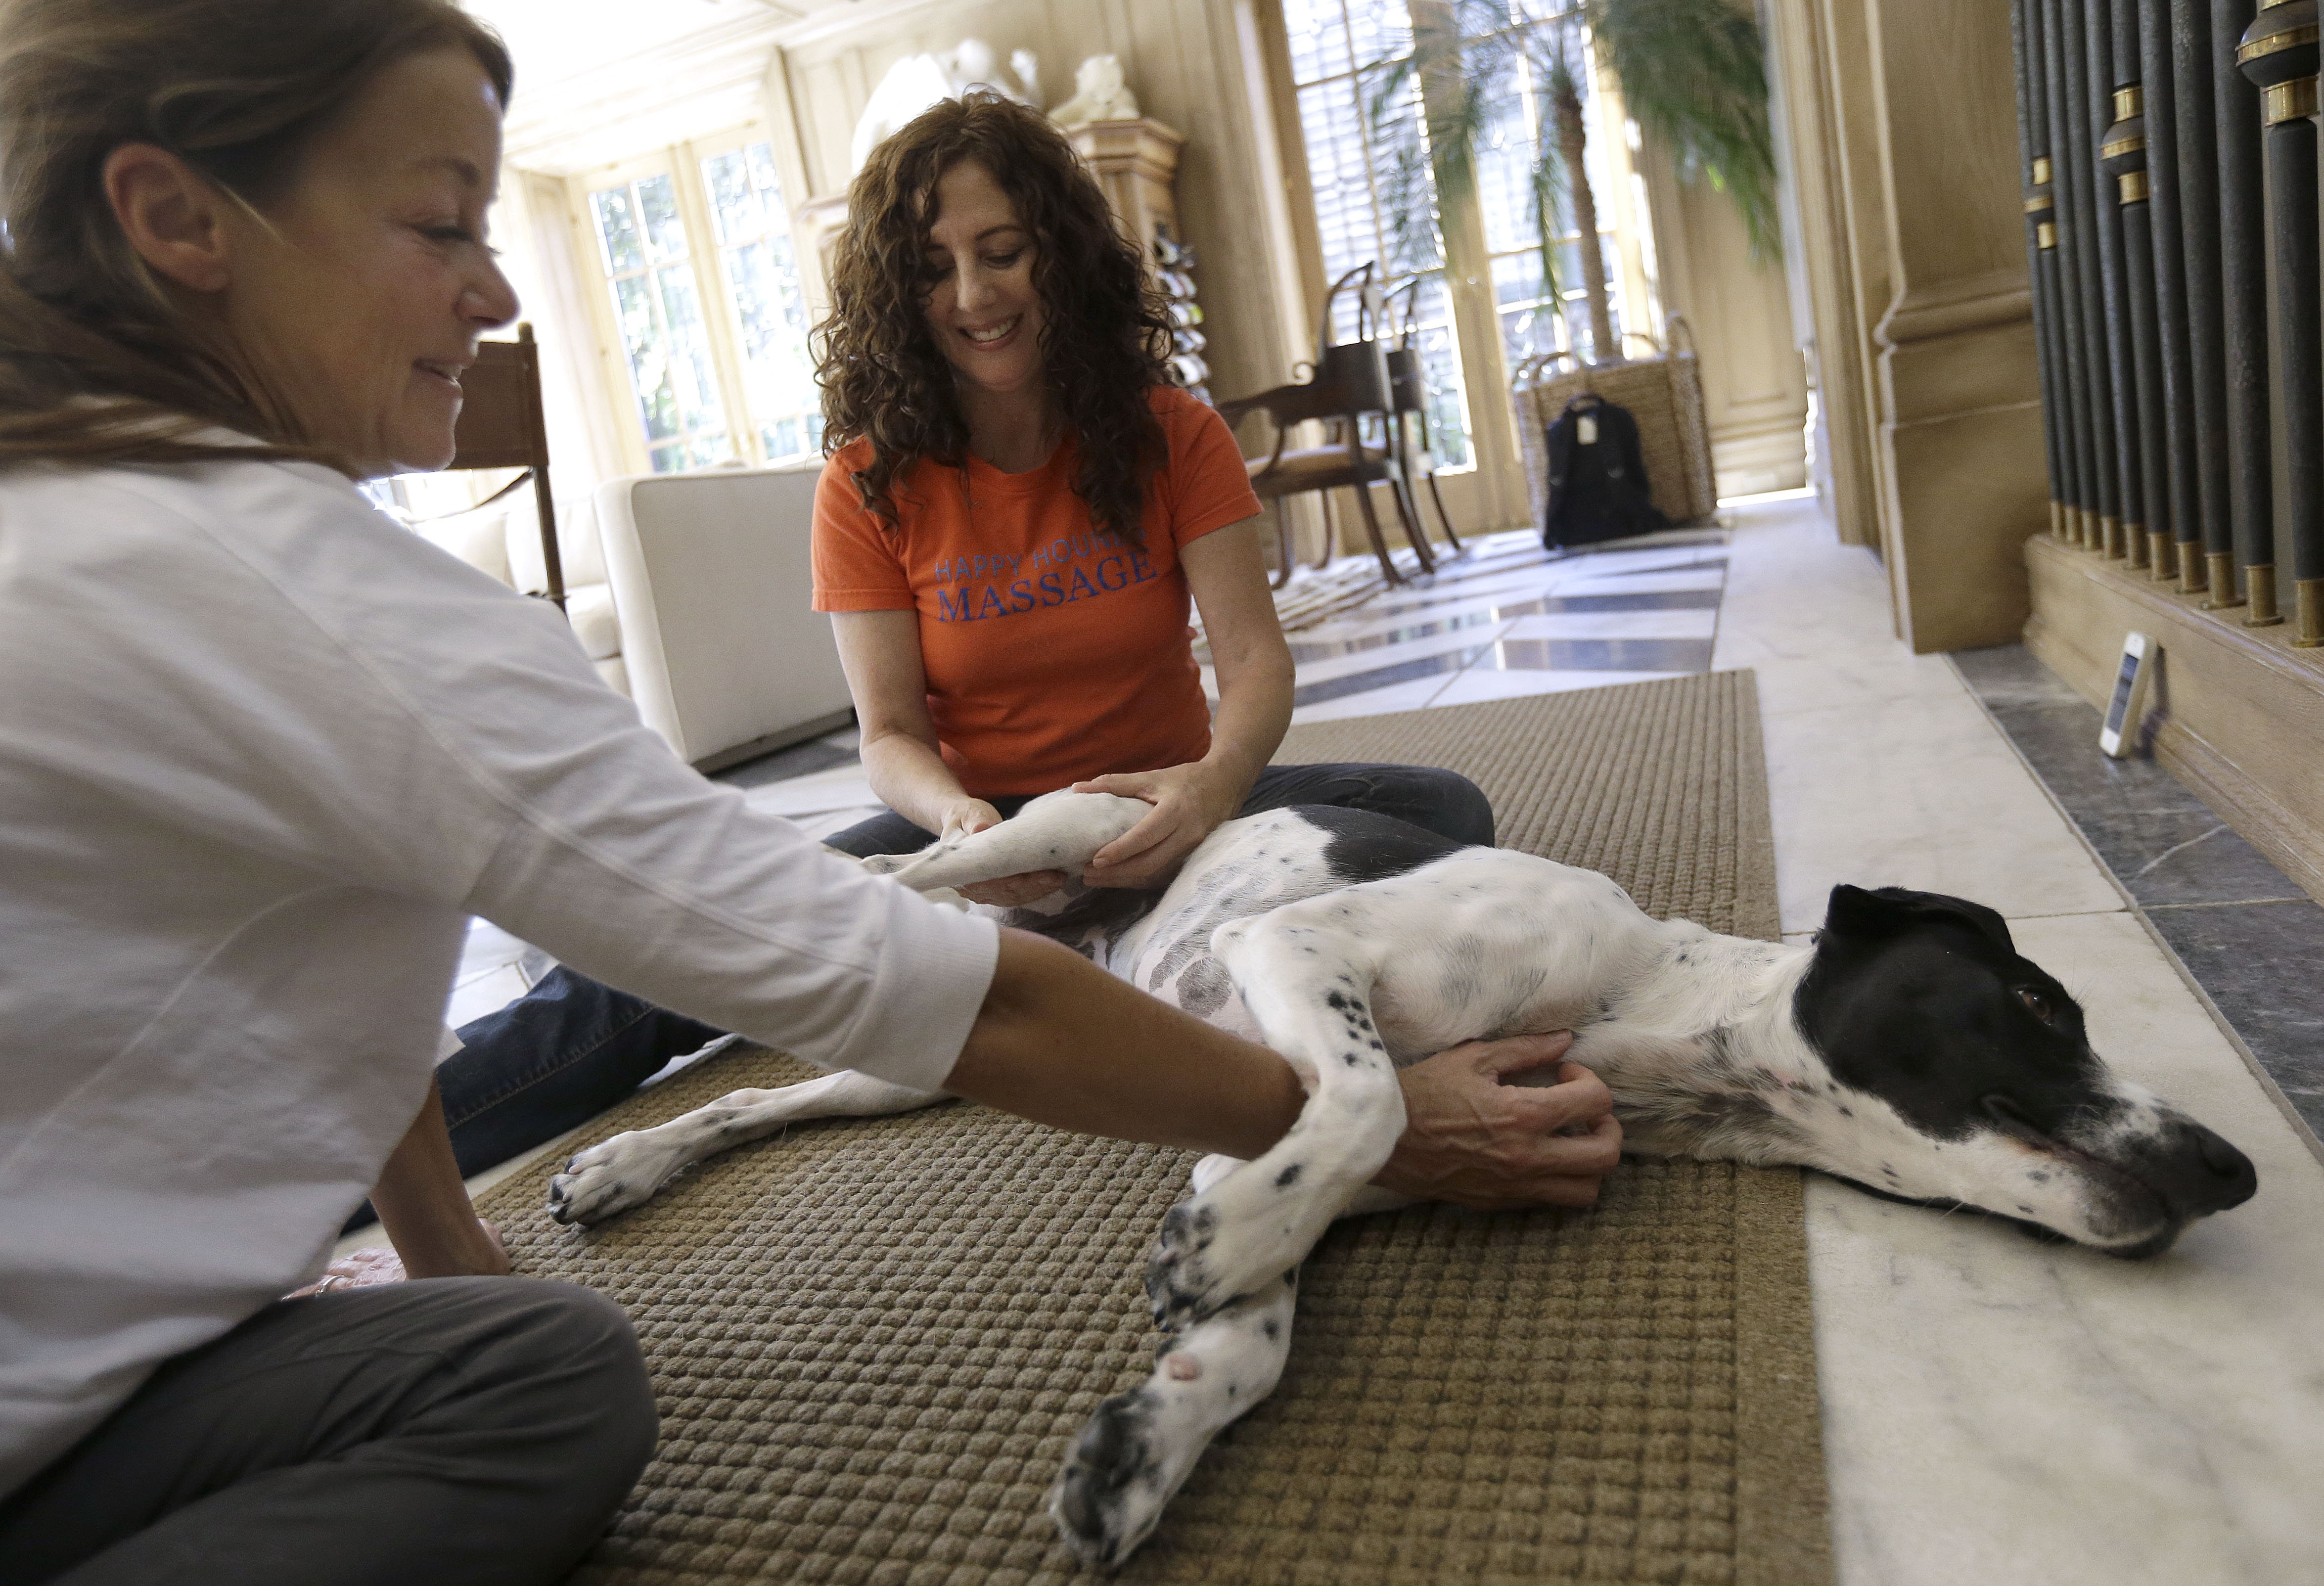 Shelah Barr, center, gives a massage to Dewie, 2, at the home of Laurie Ubben in San Francisco. Practitioners say pet massage can prevent problems in younger animals and alleviate them in older ones.